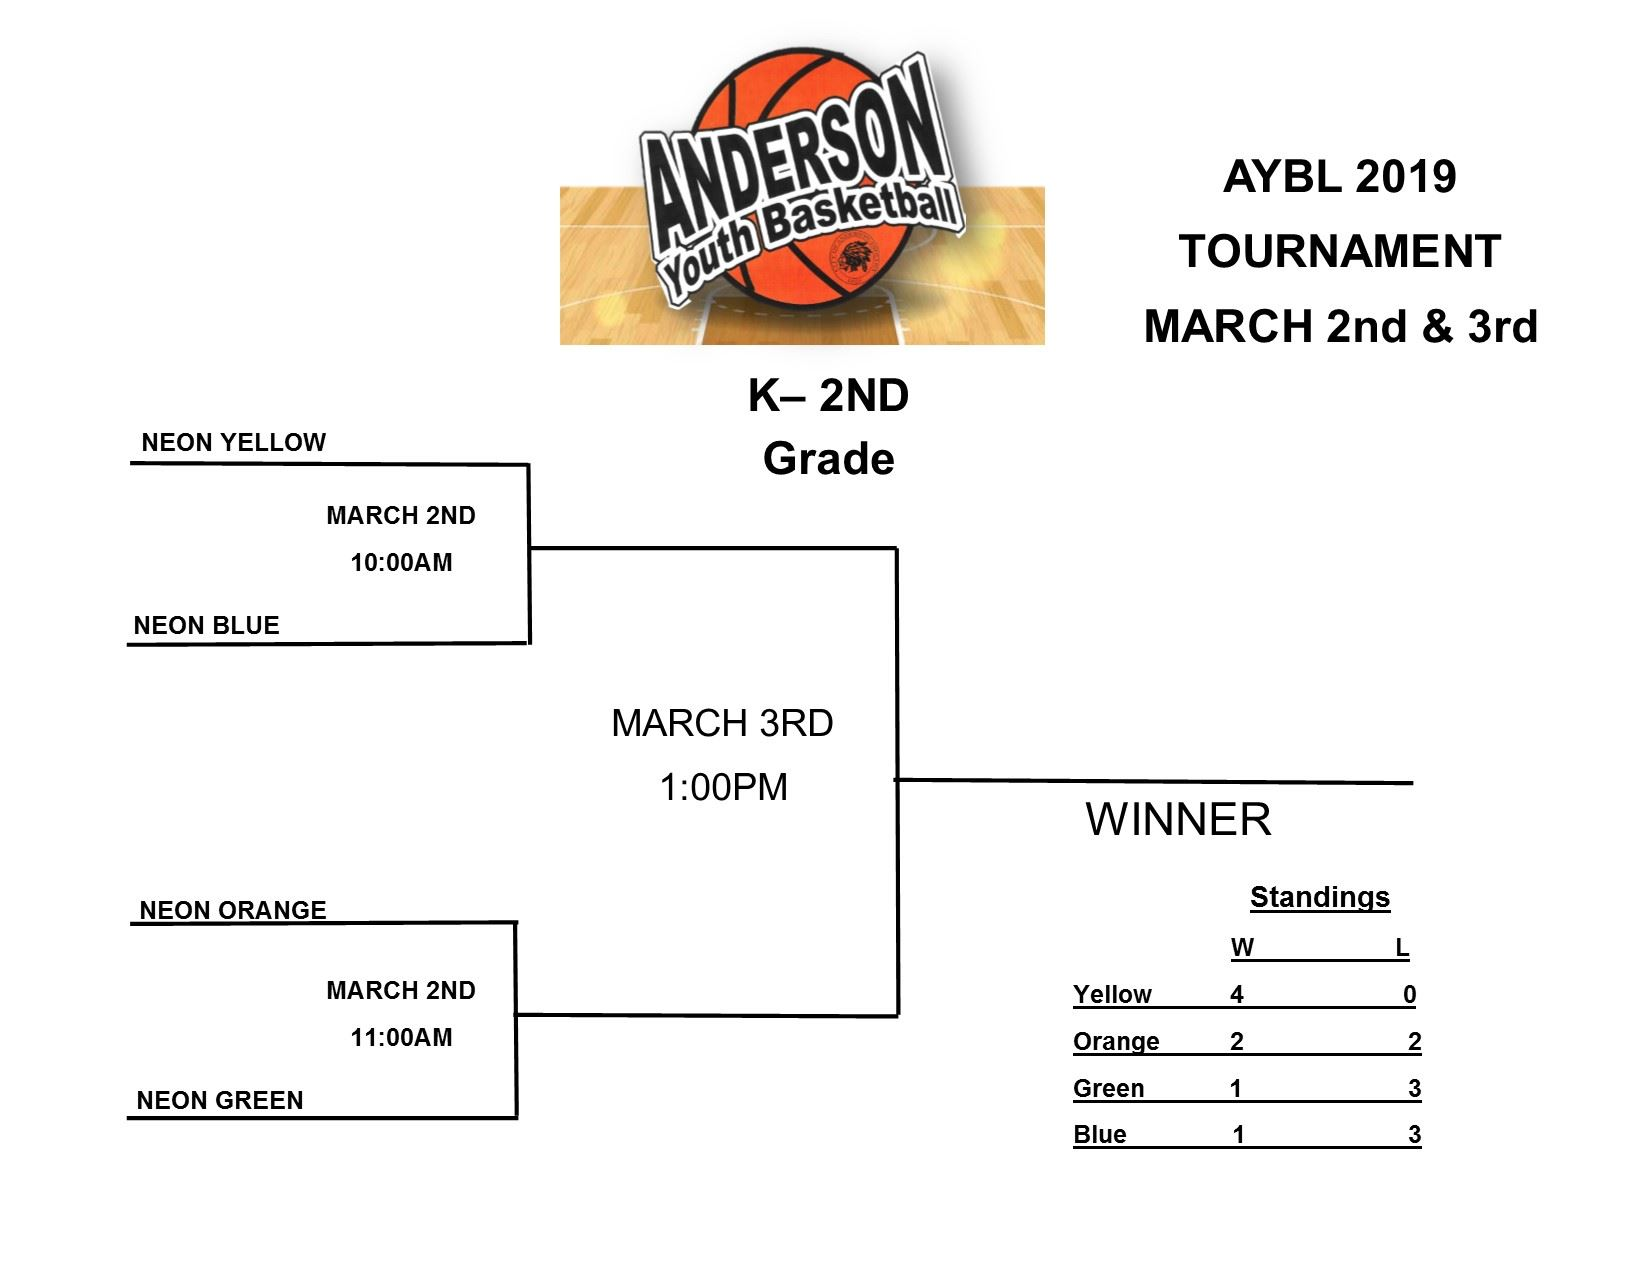 Tournament Bracket k-2nd